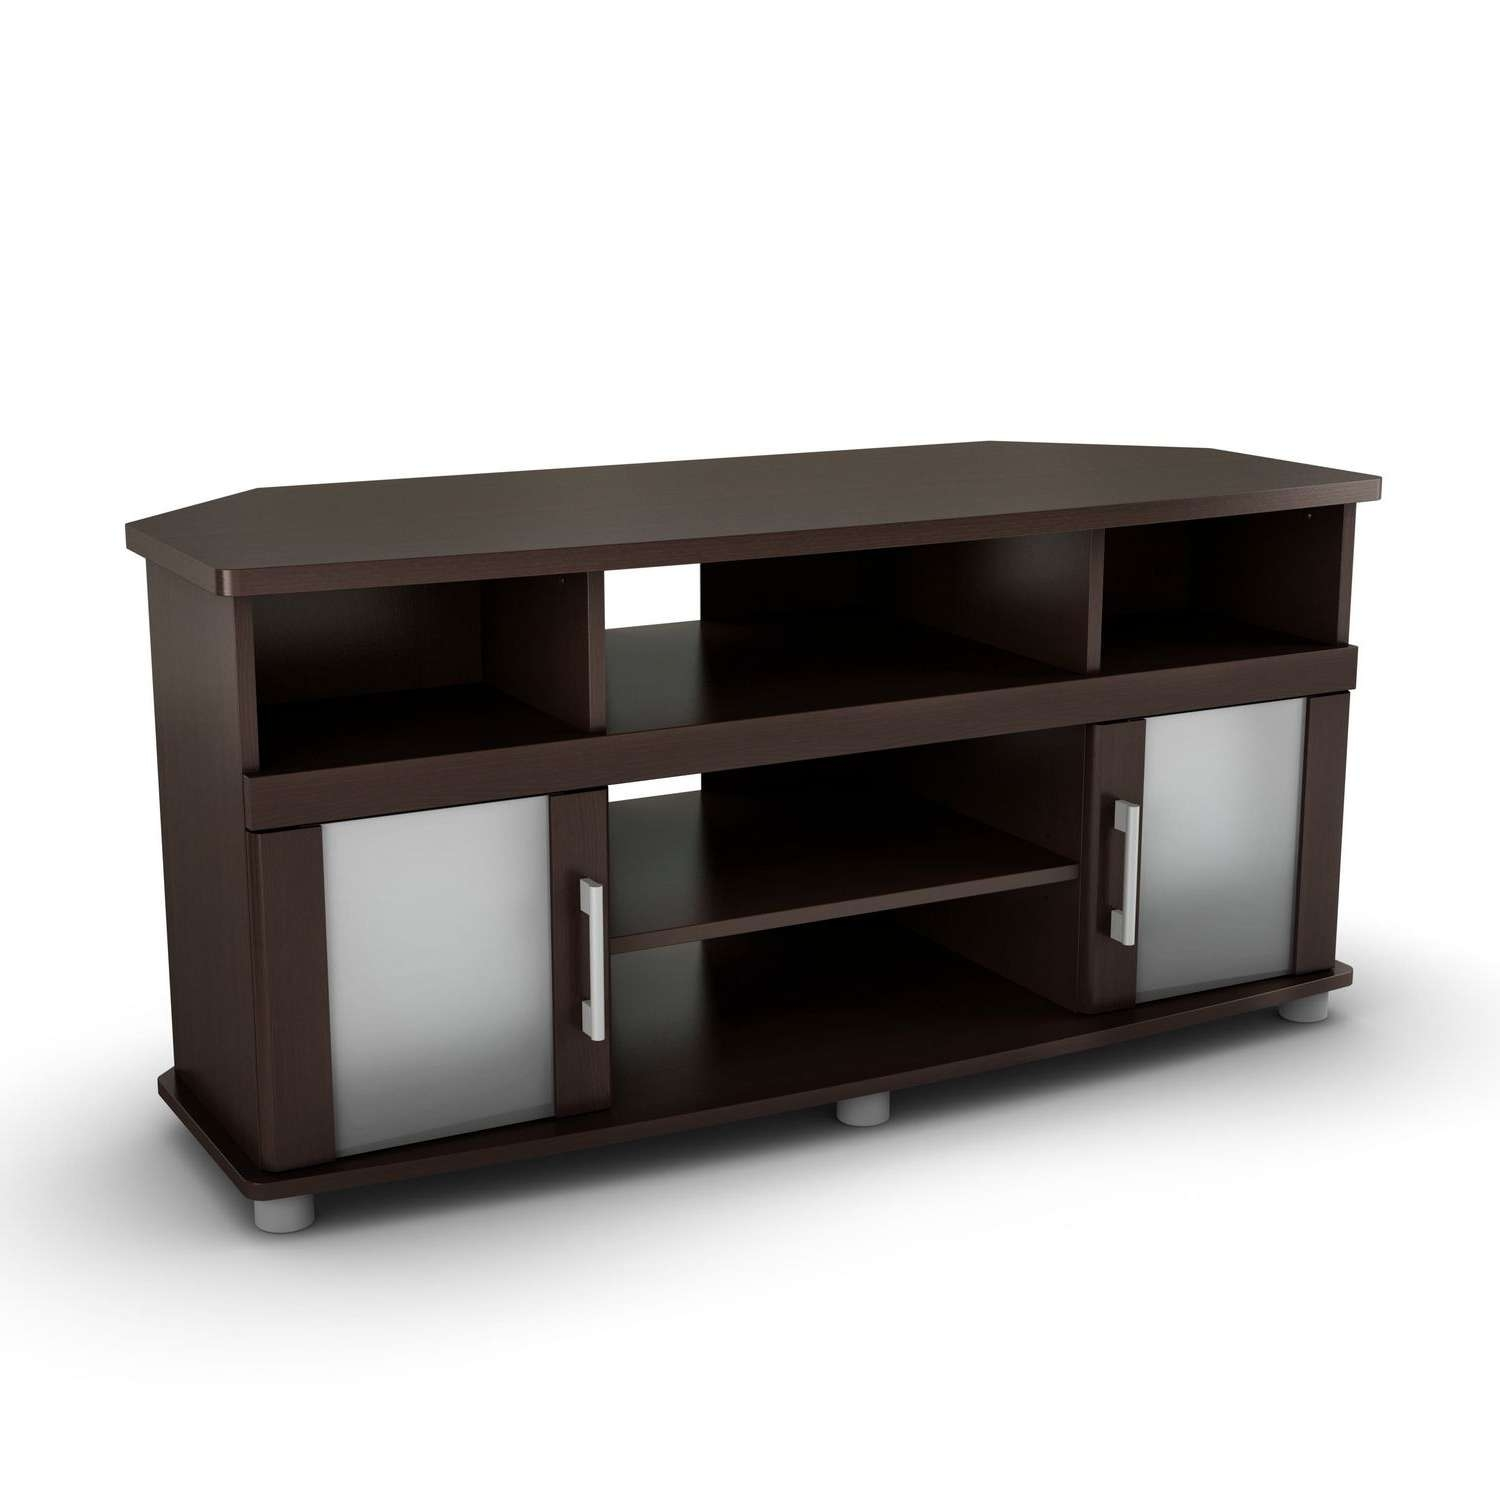 South Shore City Life Corner Tv Stand, For Tvs Up To 50 Inches With Regard To Tv Stands For Corners (View 18 of 20)